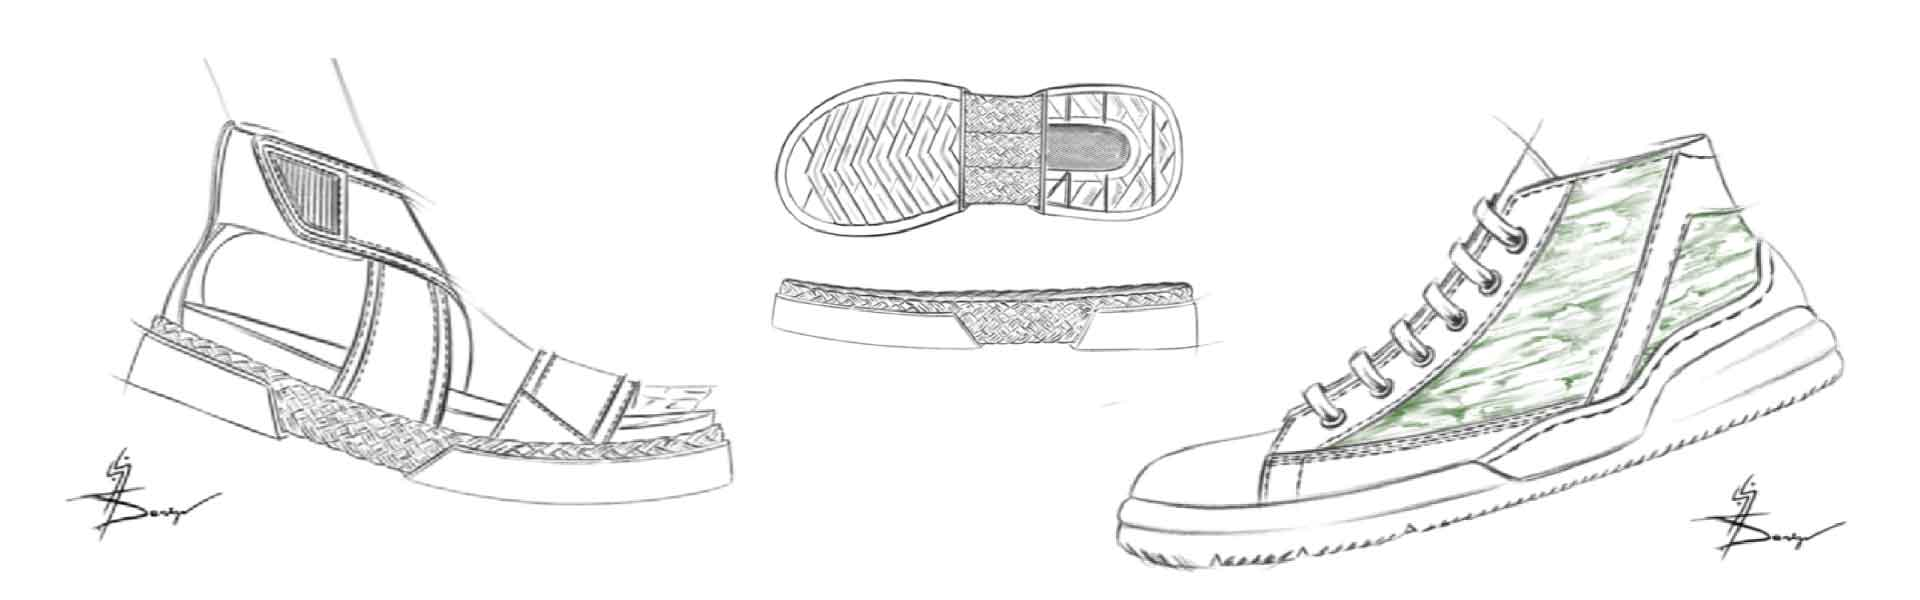 Footwear Trend SS21 Green Dye - Sketches